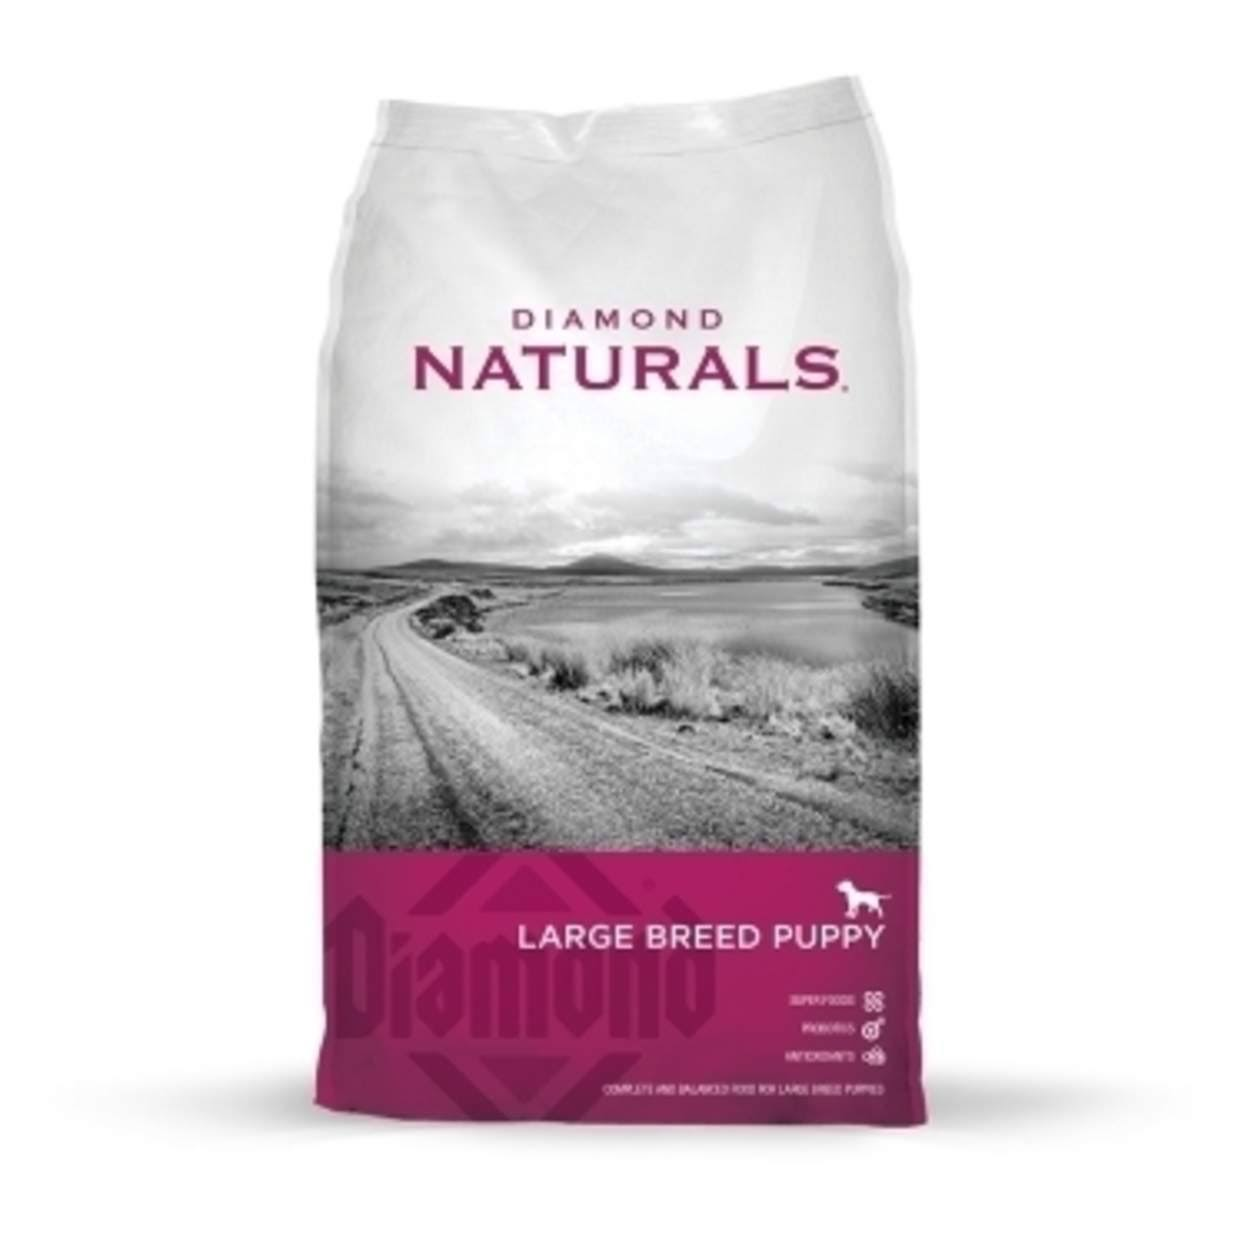 Diamond Naturals Large Breed Puppy Dry Dog Food - Lamb and Rice, 40lb